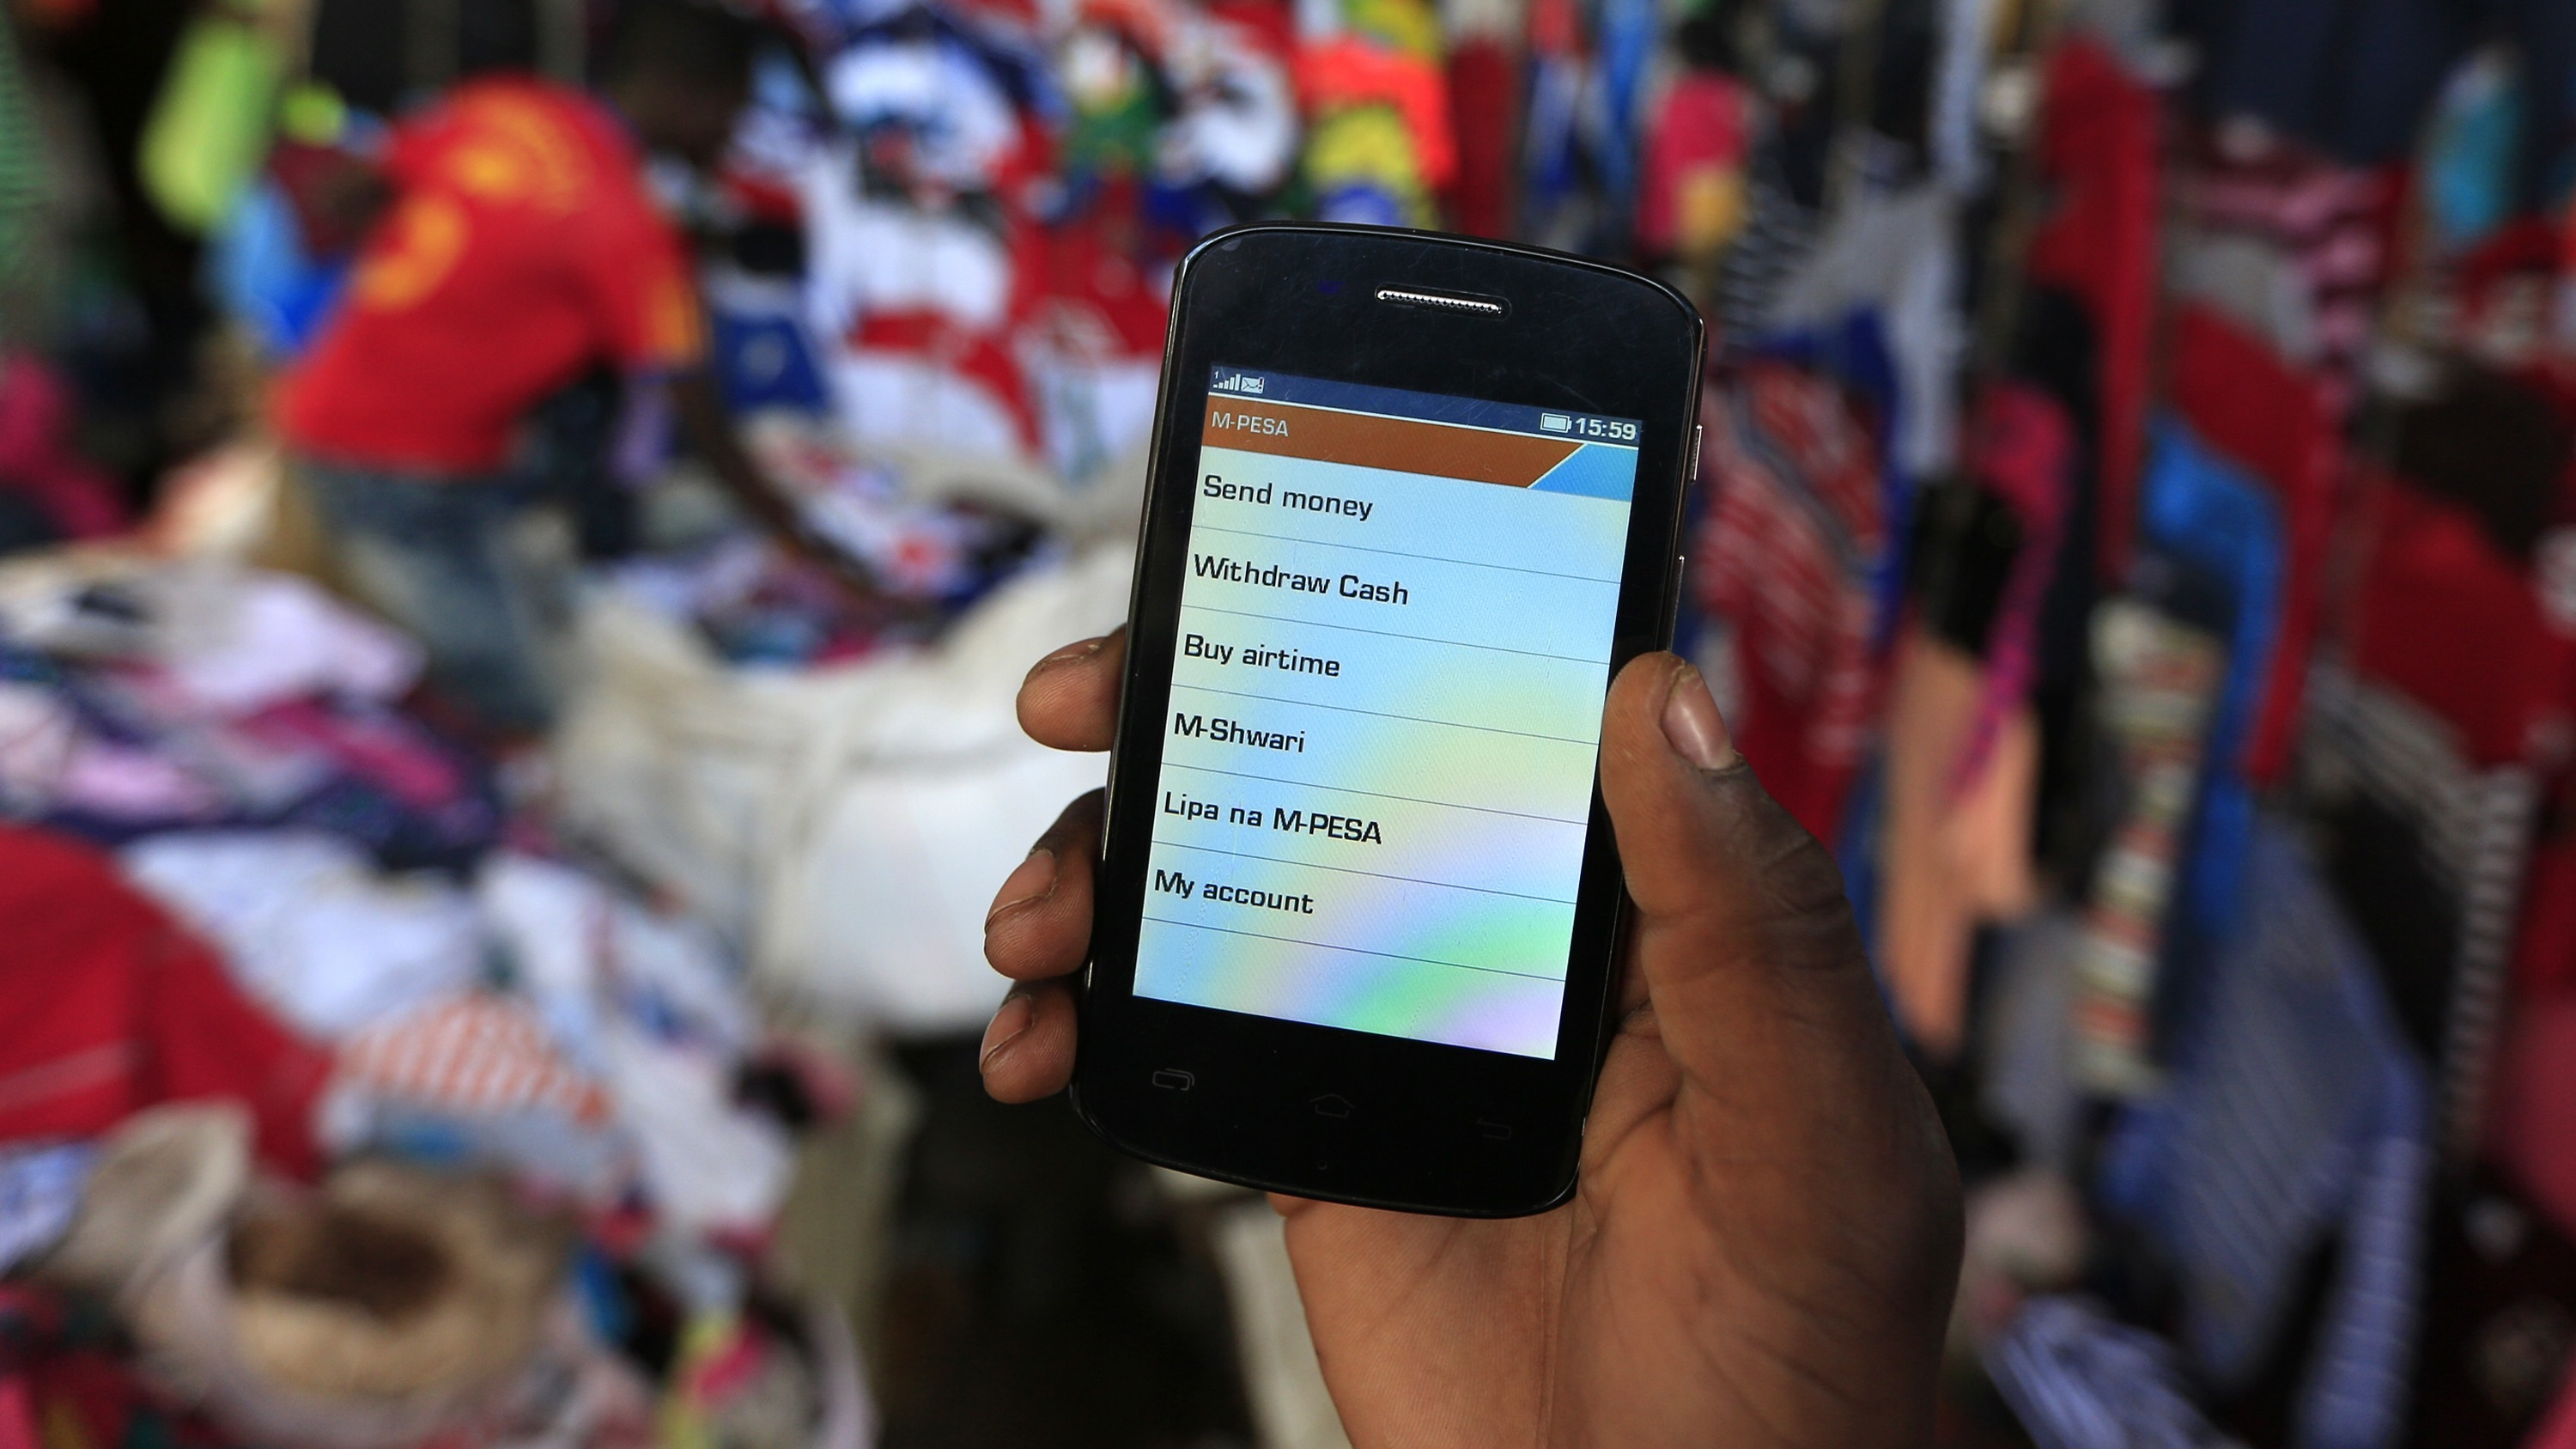 A man holds up his mobile phone showing a M-Pesa mobile money transaction page for the photographer at an open air market in Kibera in Kenya's capital Nairobi December 31, 2014. Safaricom, Kenya's biggest telecoms firm, is a model of how technology can be used to financially include millions of people with mobile telephones but without access to traditional infrastructure such as the banks that are available to the wealthy or those living in cities. Safaricom in 2007 pioneered its M-Pesa mobile money transfer technology, now used across Africa, Asia and Europe. It proved that money can be made from people who earn a few dollars a day. REUTERS/Noor Khamis